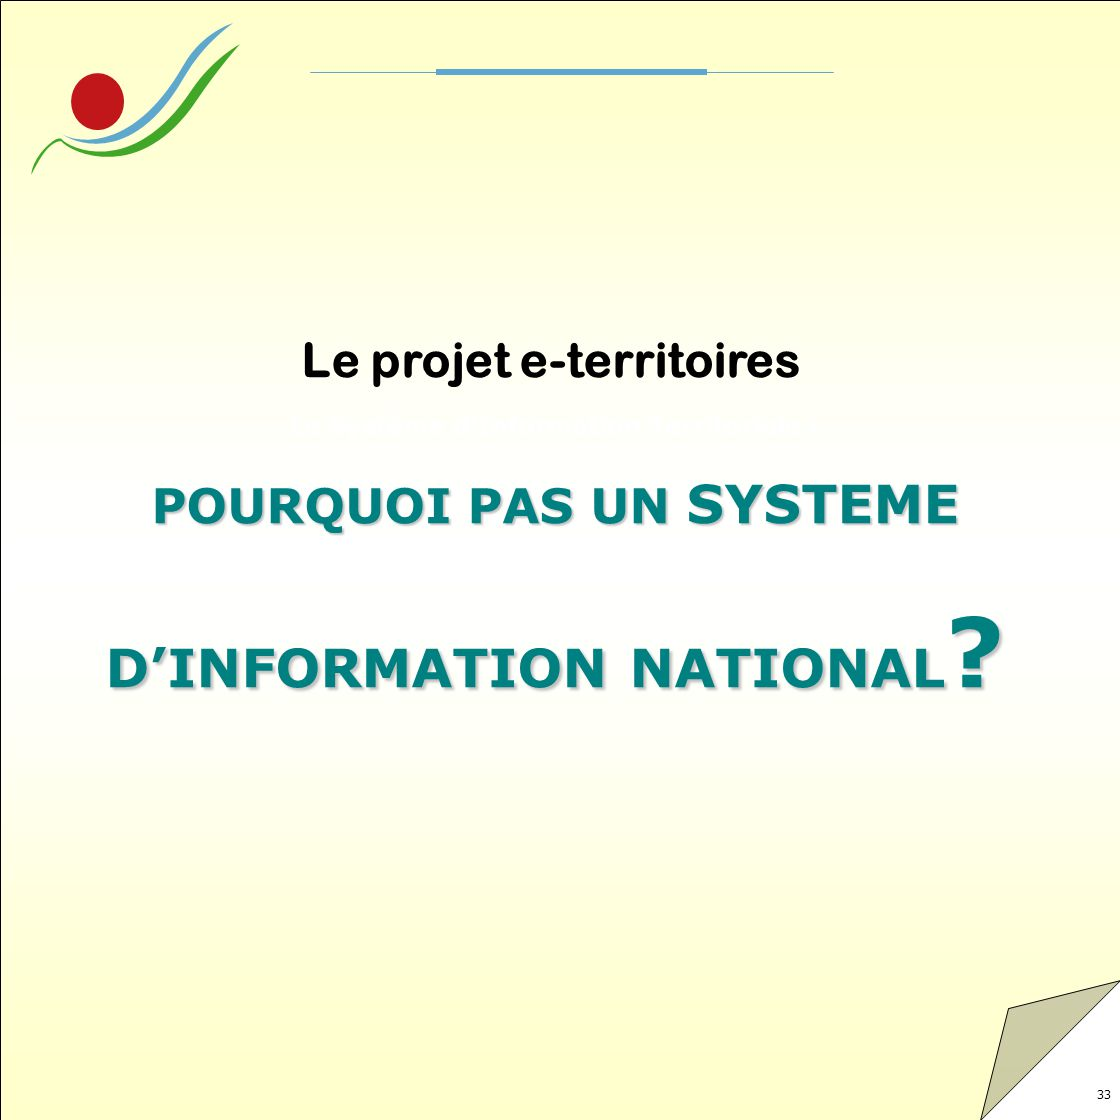 D'INFORMATION NATIONAL